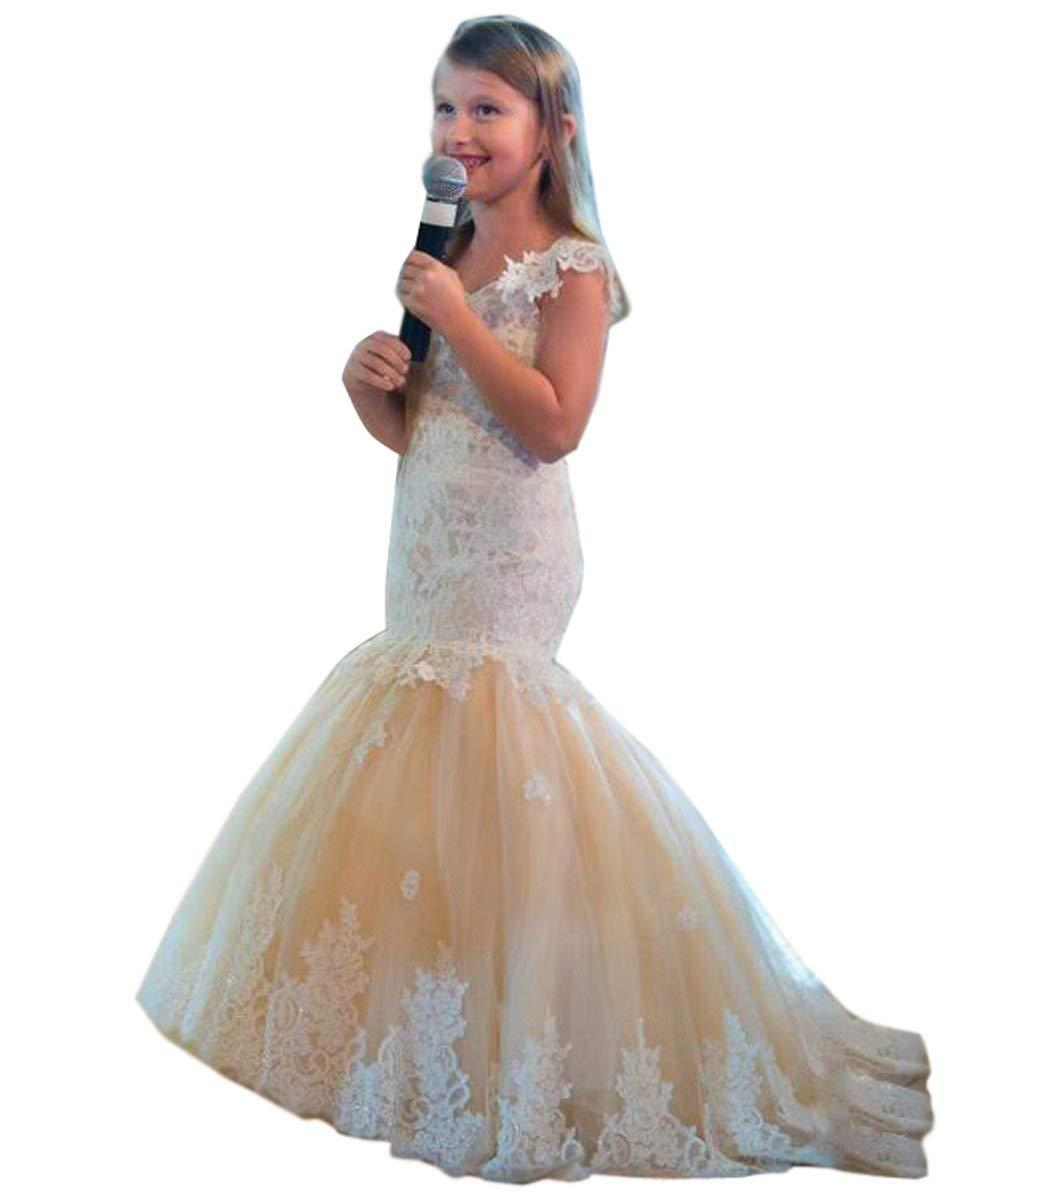 Lace Mermaid Prom Pageant Dress For Girls Champagne Flower Girls